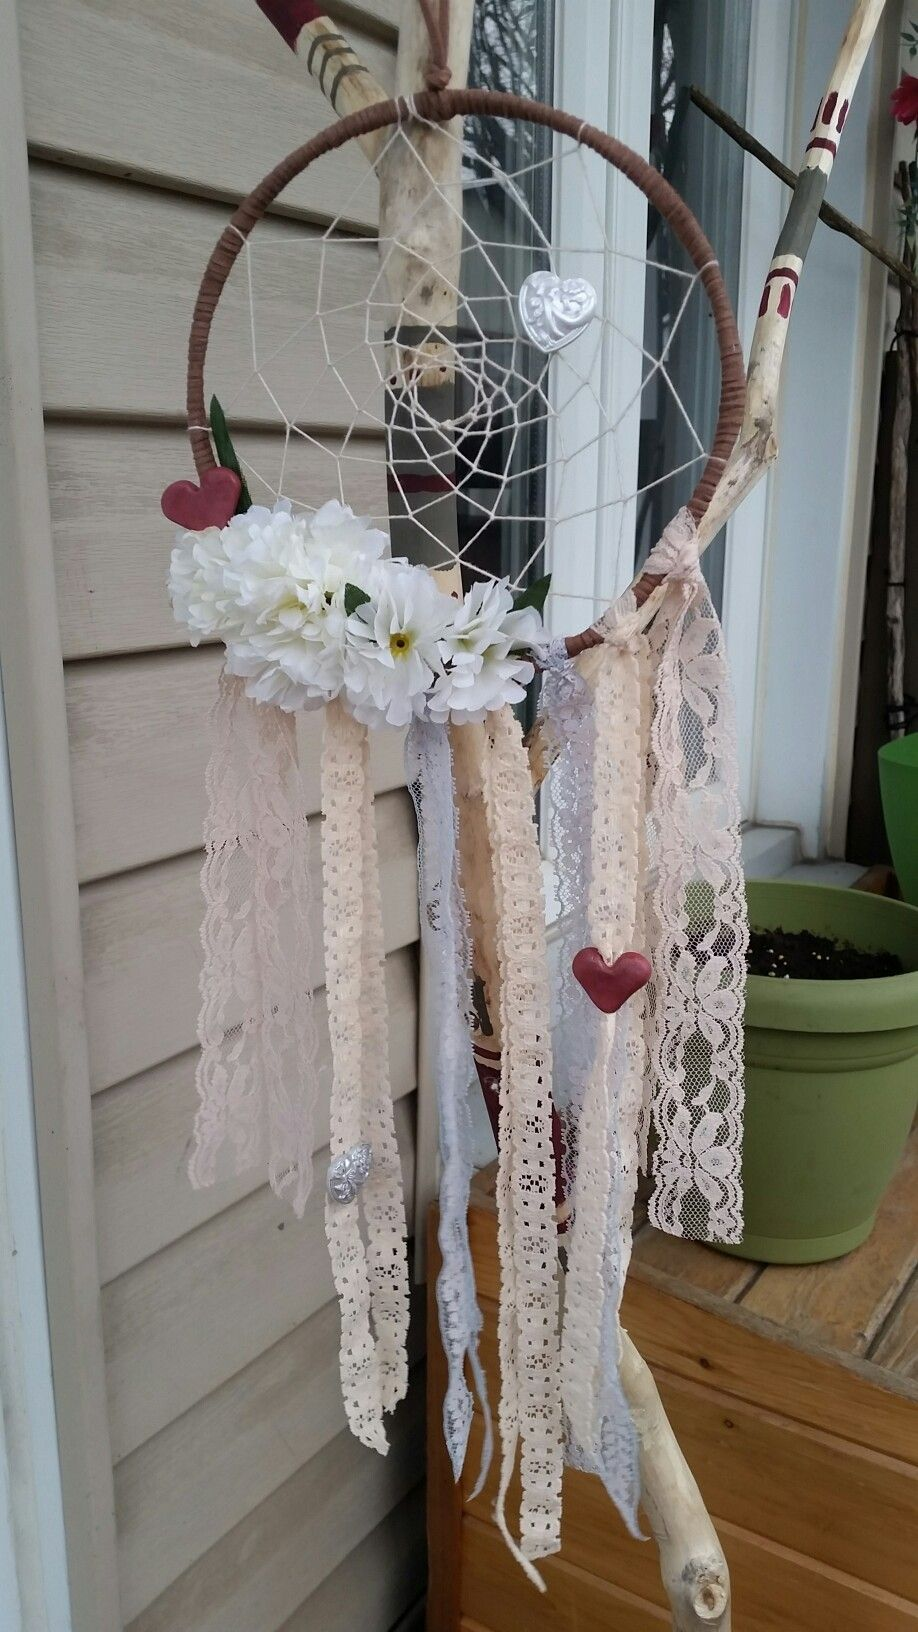 Beautifull wedding dreamcatcher by FraisesKiwis